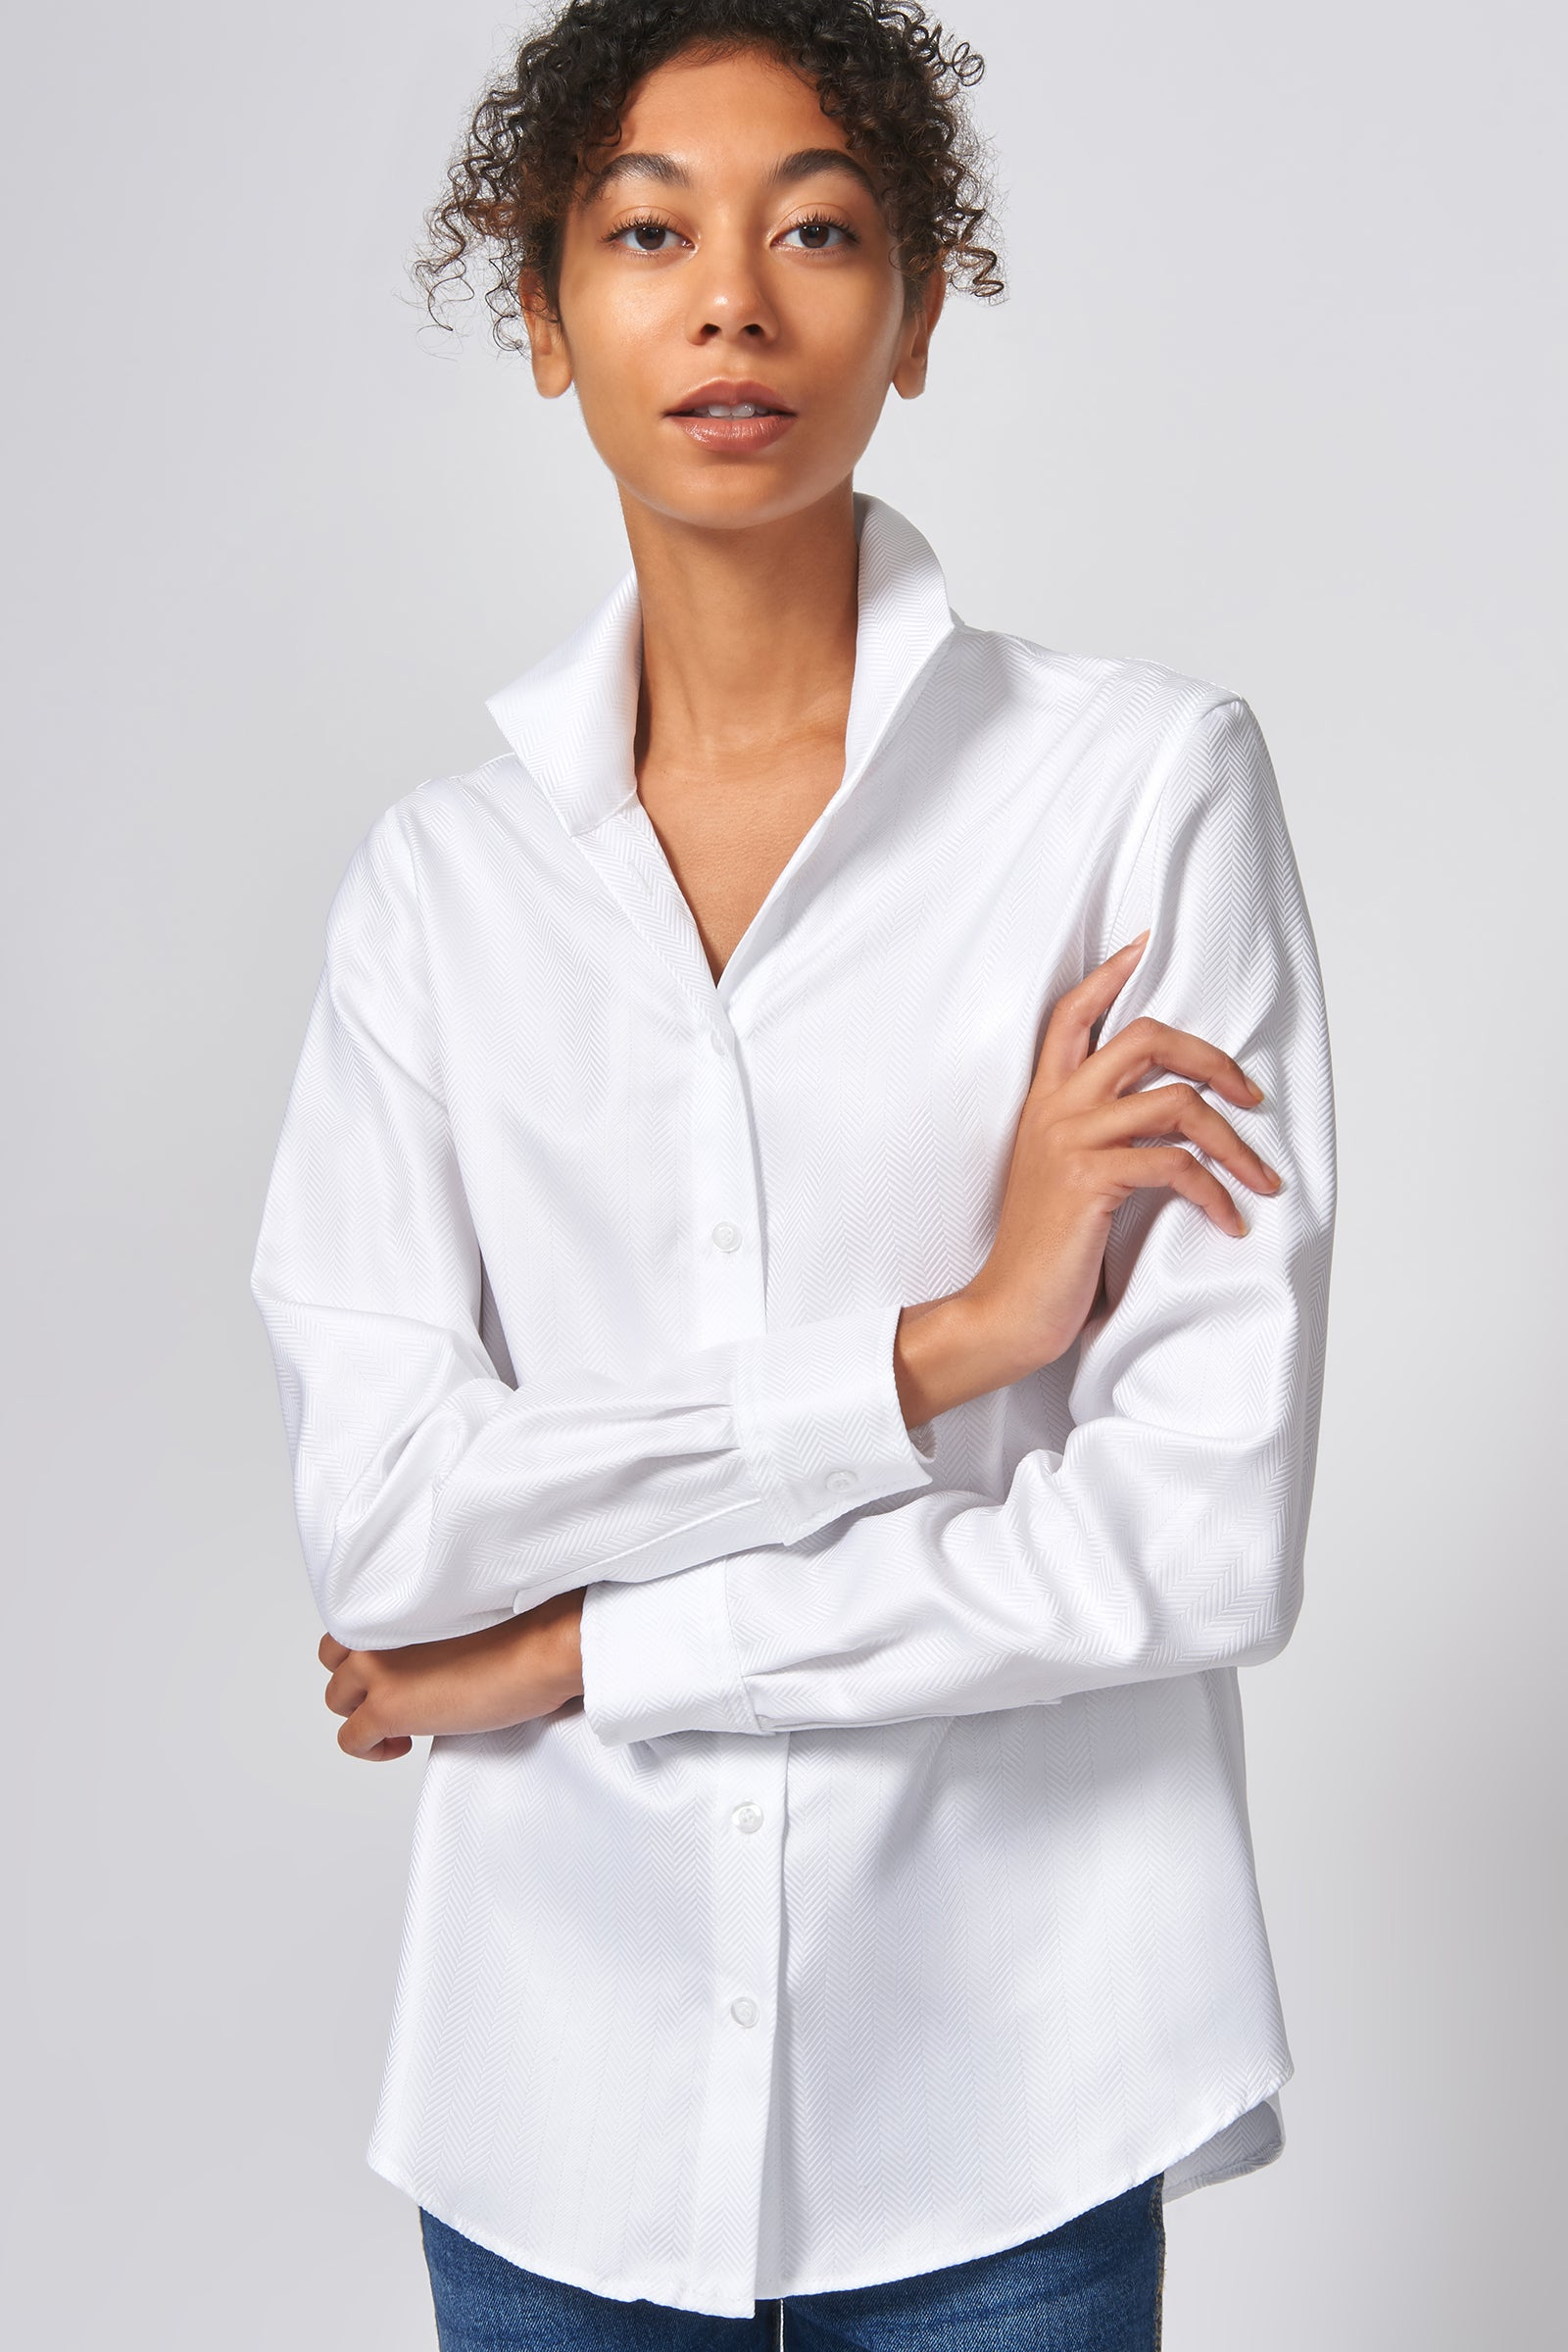 Kal Rieman Ginna Box Pleat Shirt in White Herringbone on Model Front Alternate View